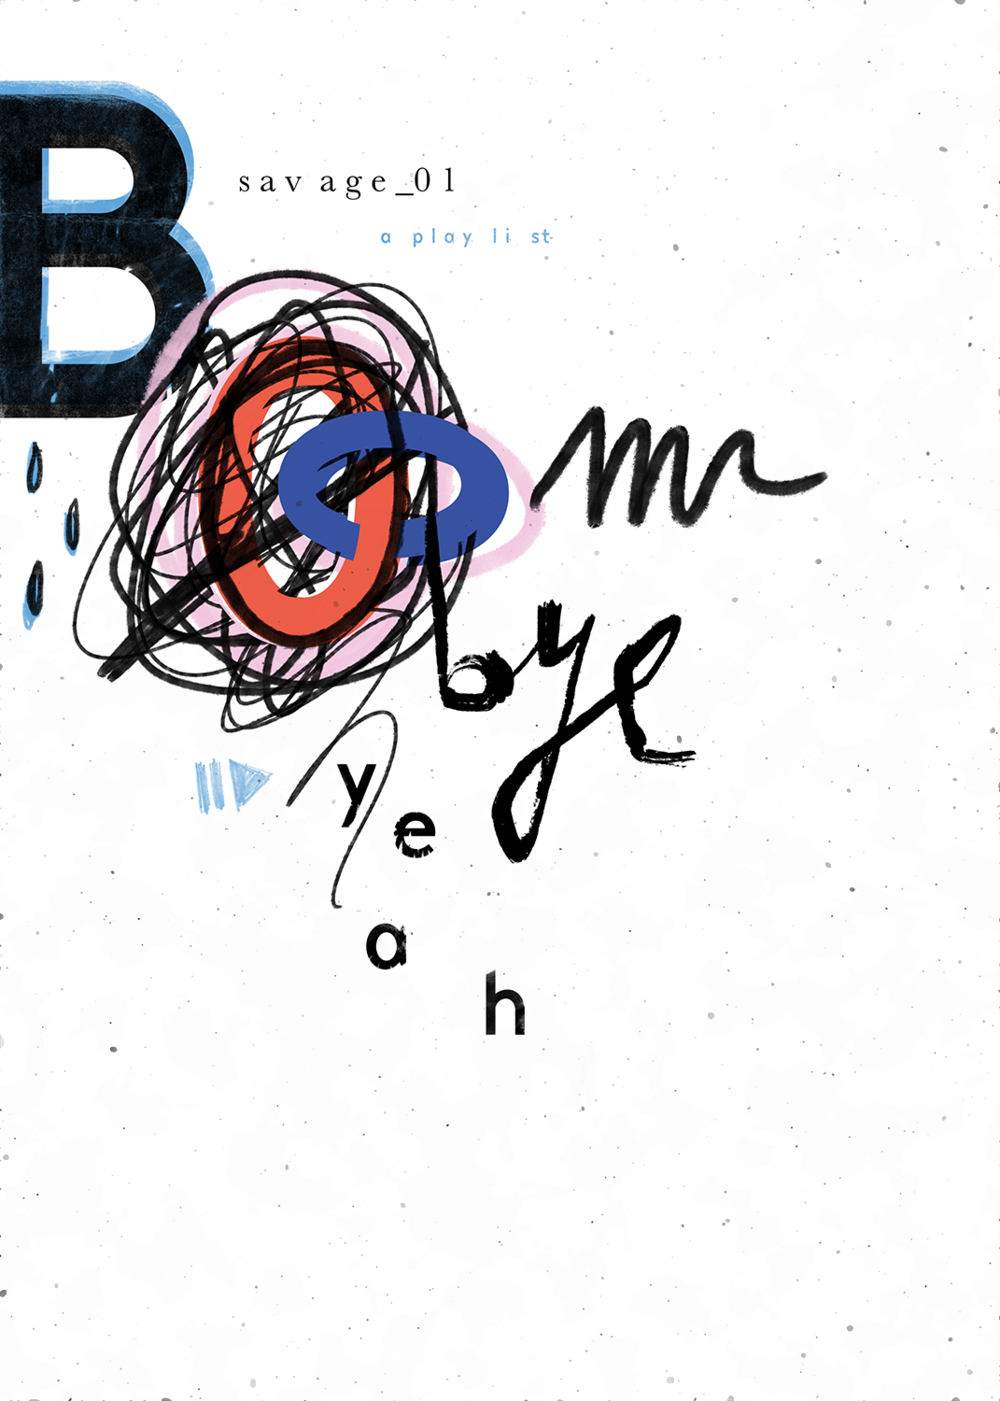 TSB - Savage Playlist 01 - Boom Bye Yeah (design Julie Smits) 02.png